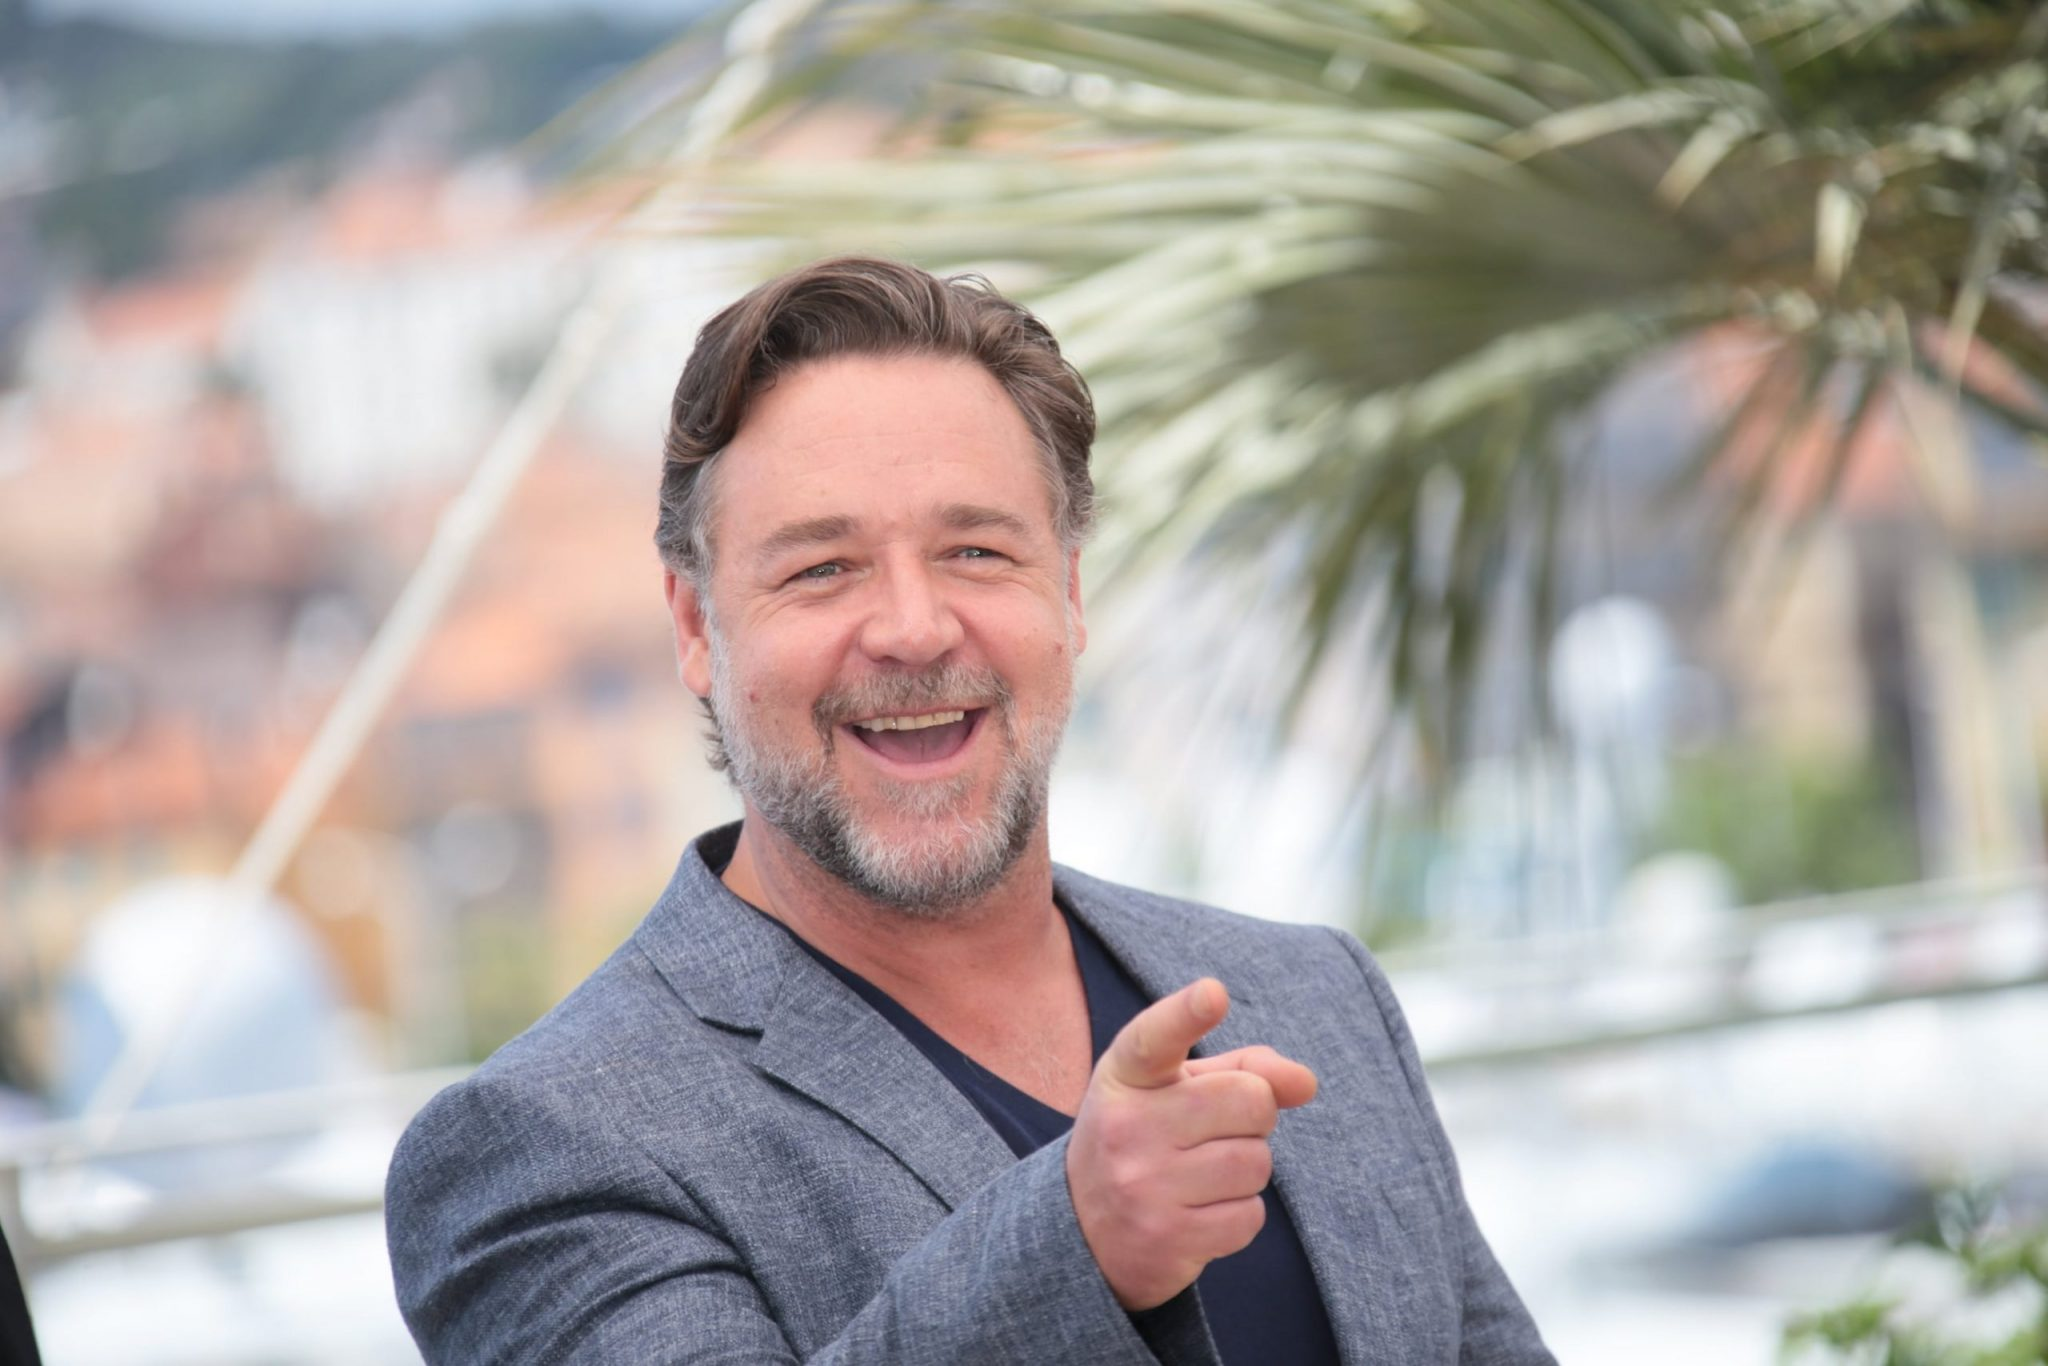 RUSSELL CROWE'S DIVORCE AUCTION